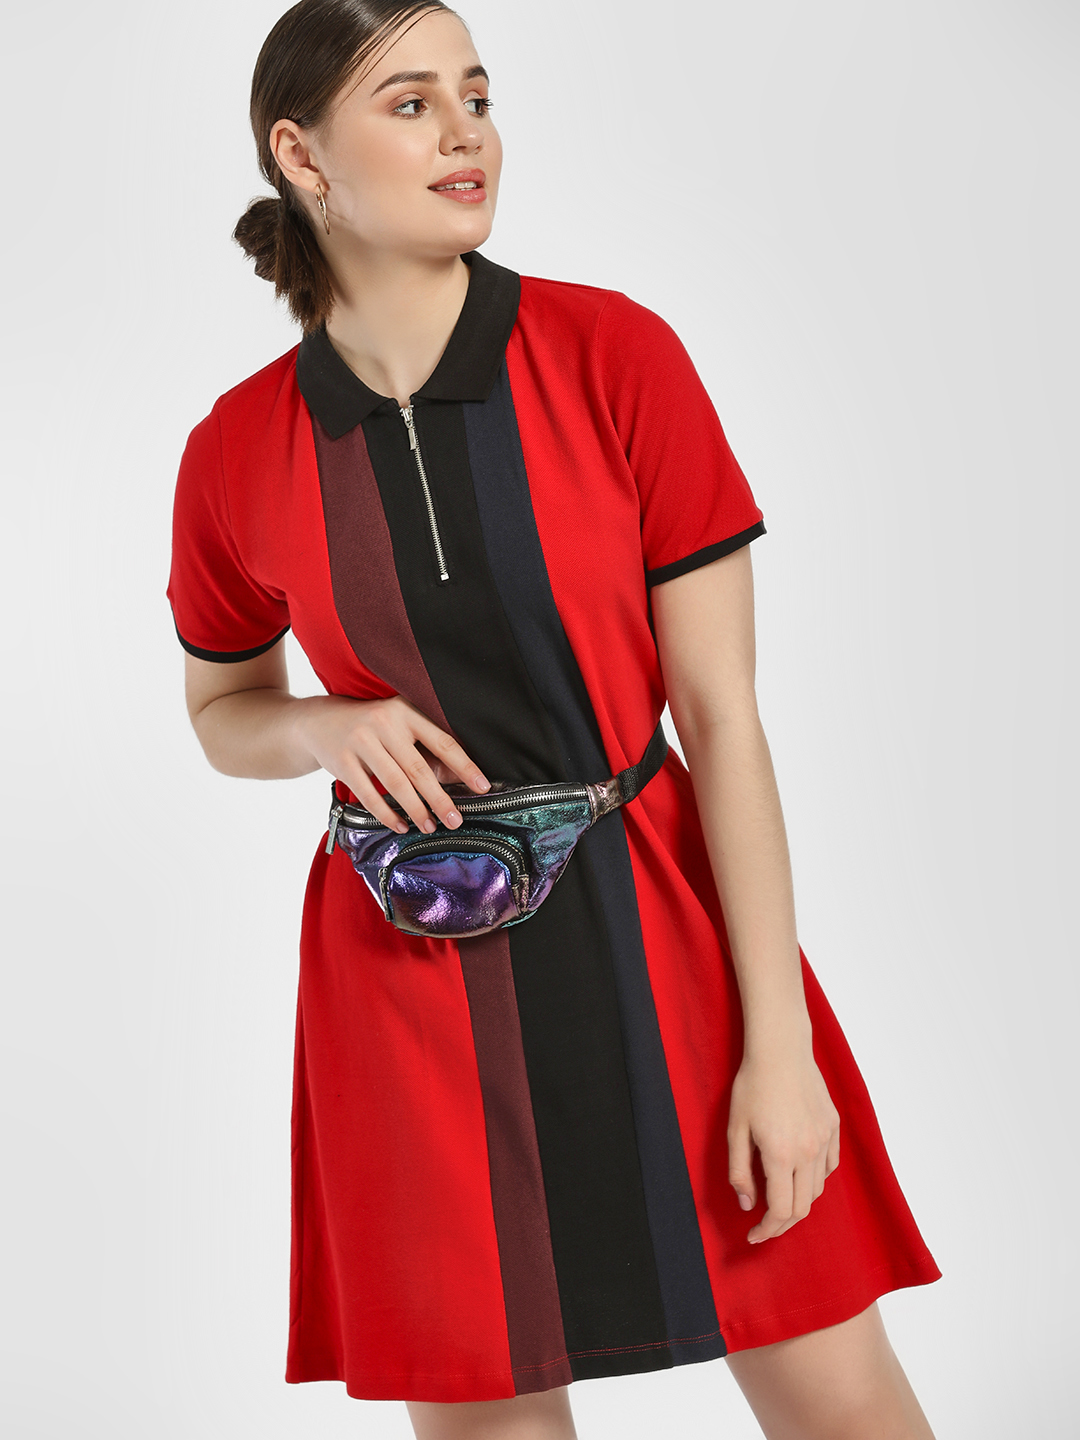 Disrupt Red Colour Block Polo T-Shirt Dress 1